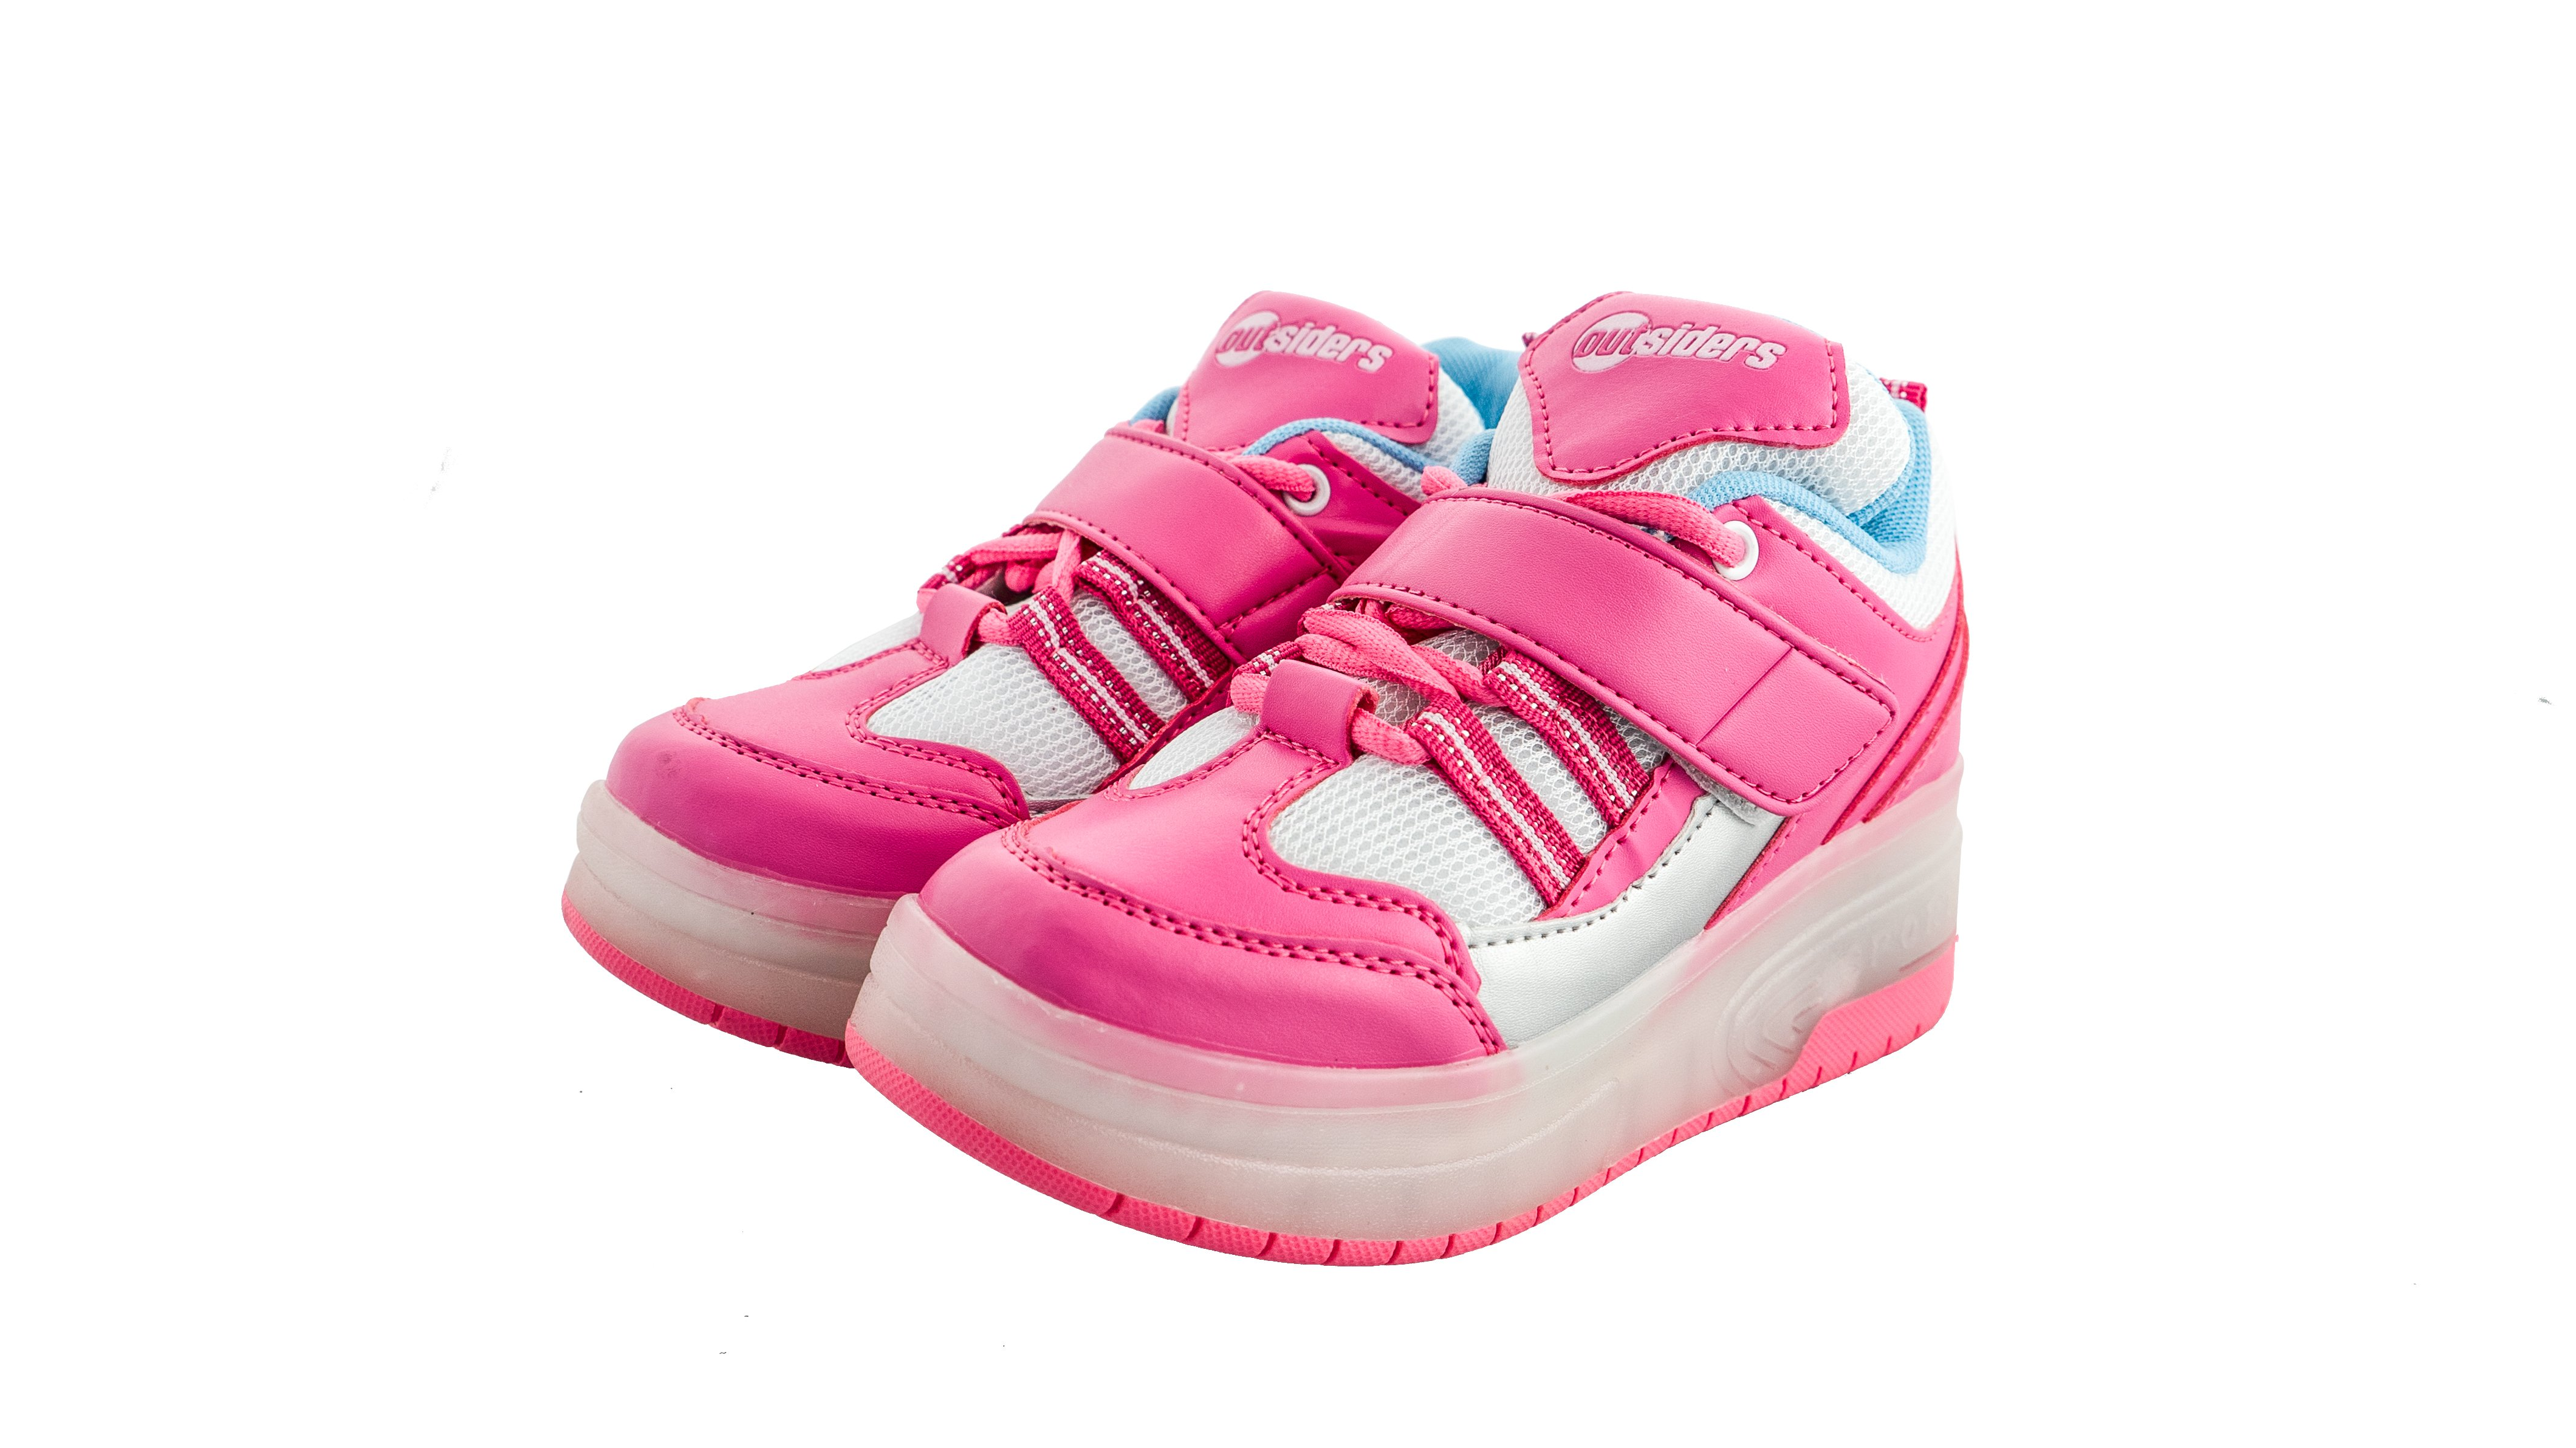 Outsiders - Roller Shoes with LED - Pink/Silver (size: 30)